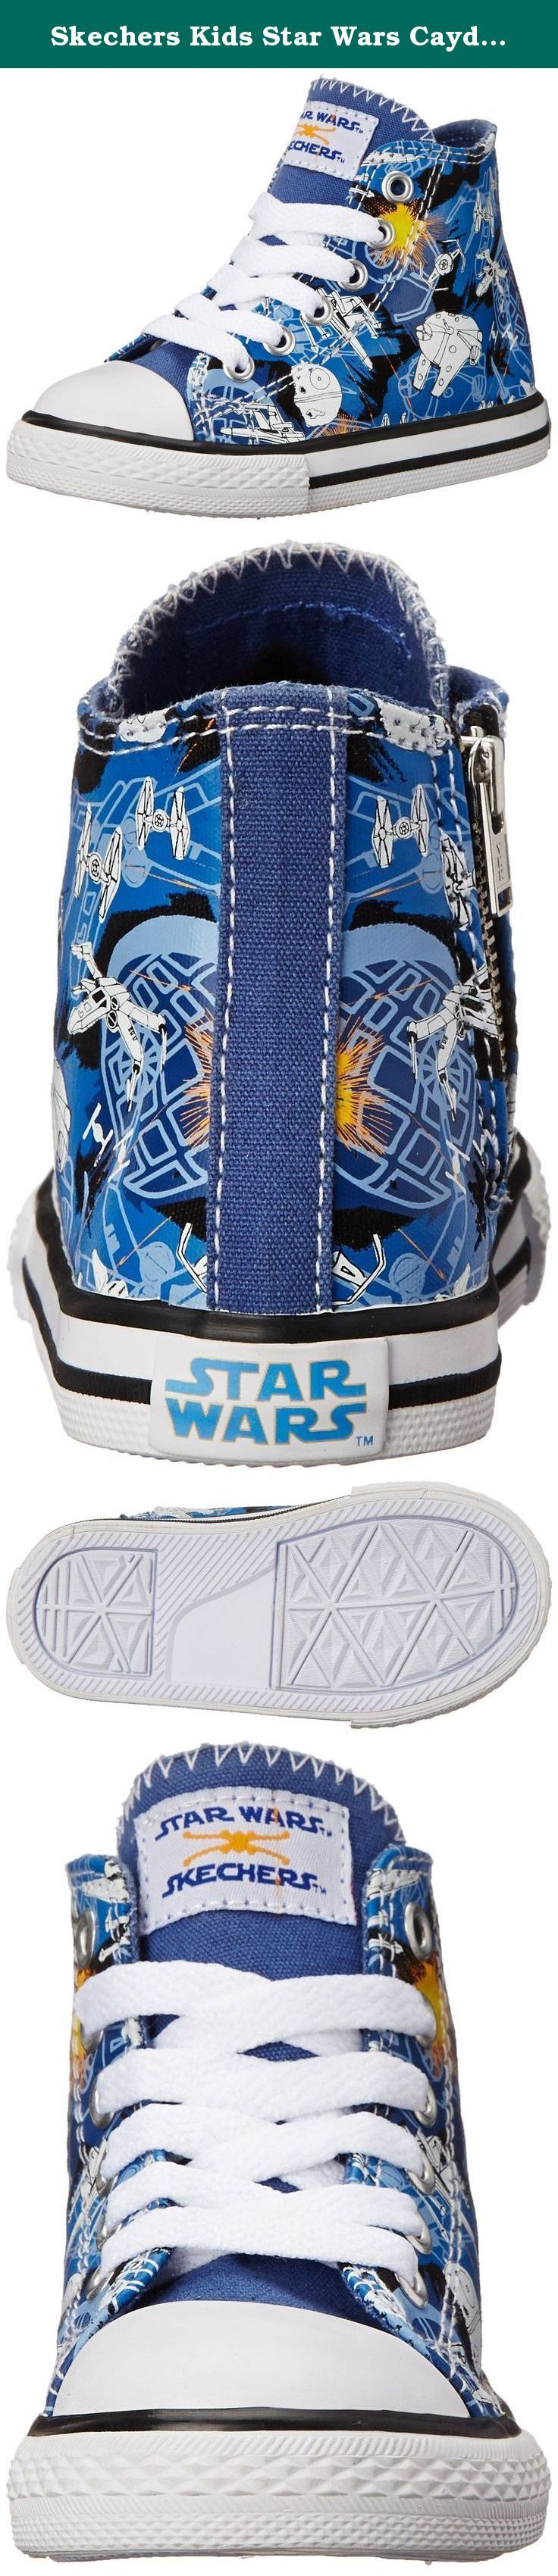 Skechers Kids Star Wars Cayden Starfighter Sneaker (Toddler) , Blue, 7 M US Toddler. Blast off for cool style with the SKECHERS Star WarsTM Cayden - Starfighter shoe. Soft woven canvas fabric upper in a lace up casual high top sneaker with stitching accents and overlay accents. Memory Foam insole.